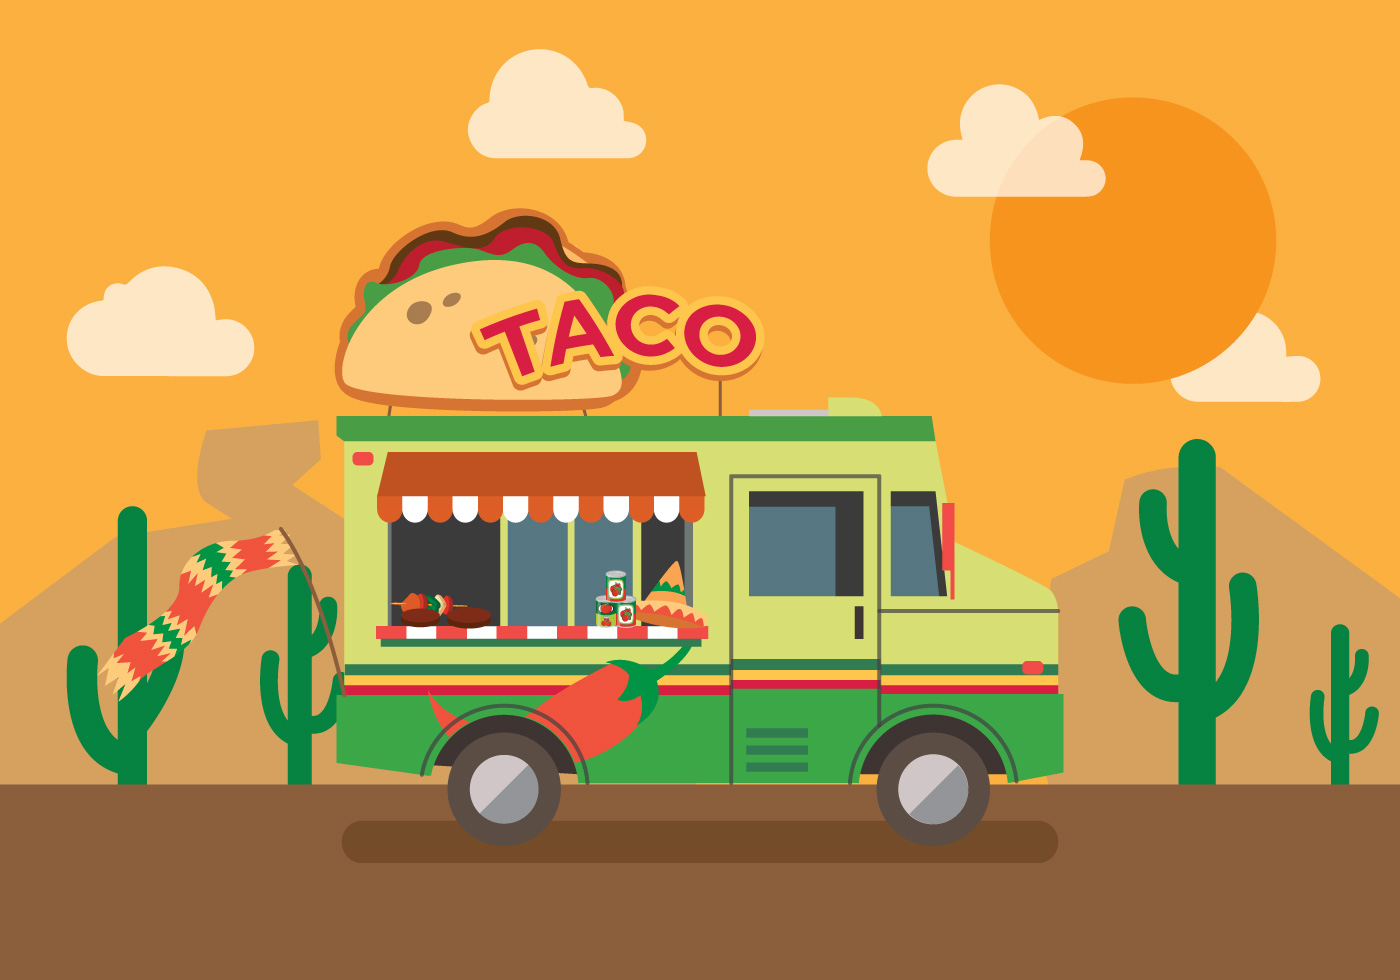 vector taco truck download free vector art  stock Backpack Clip Art packed lunch box clipart